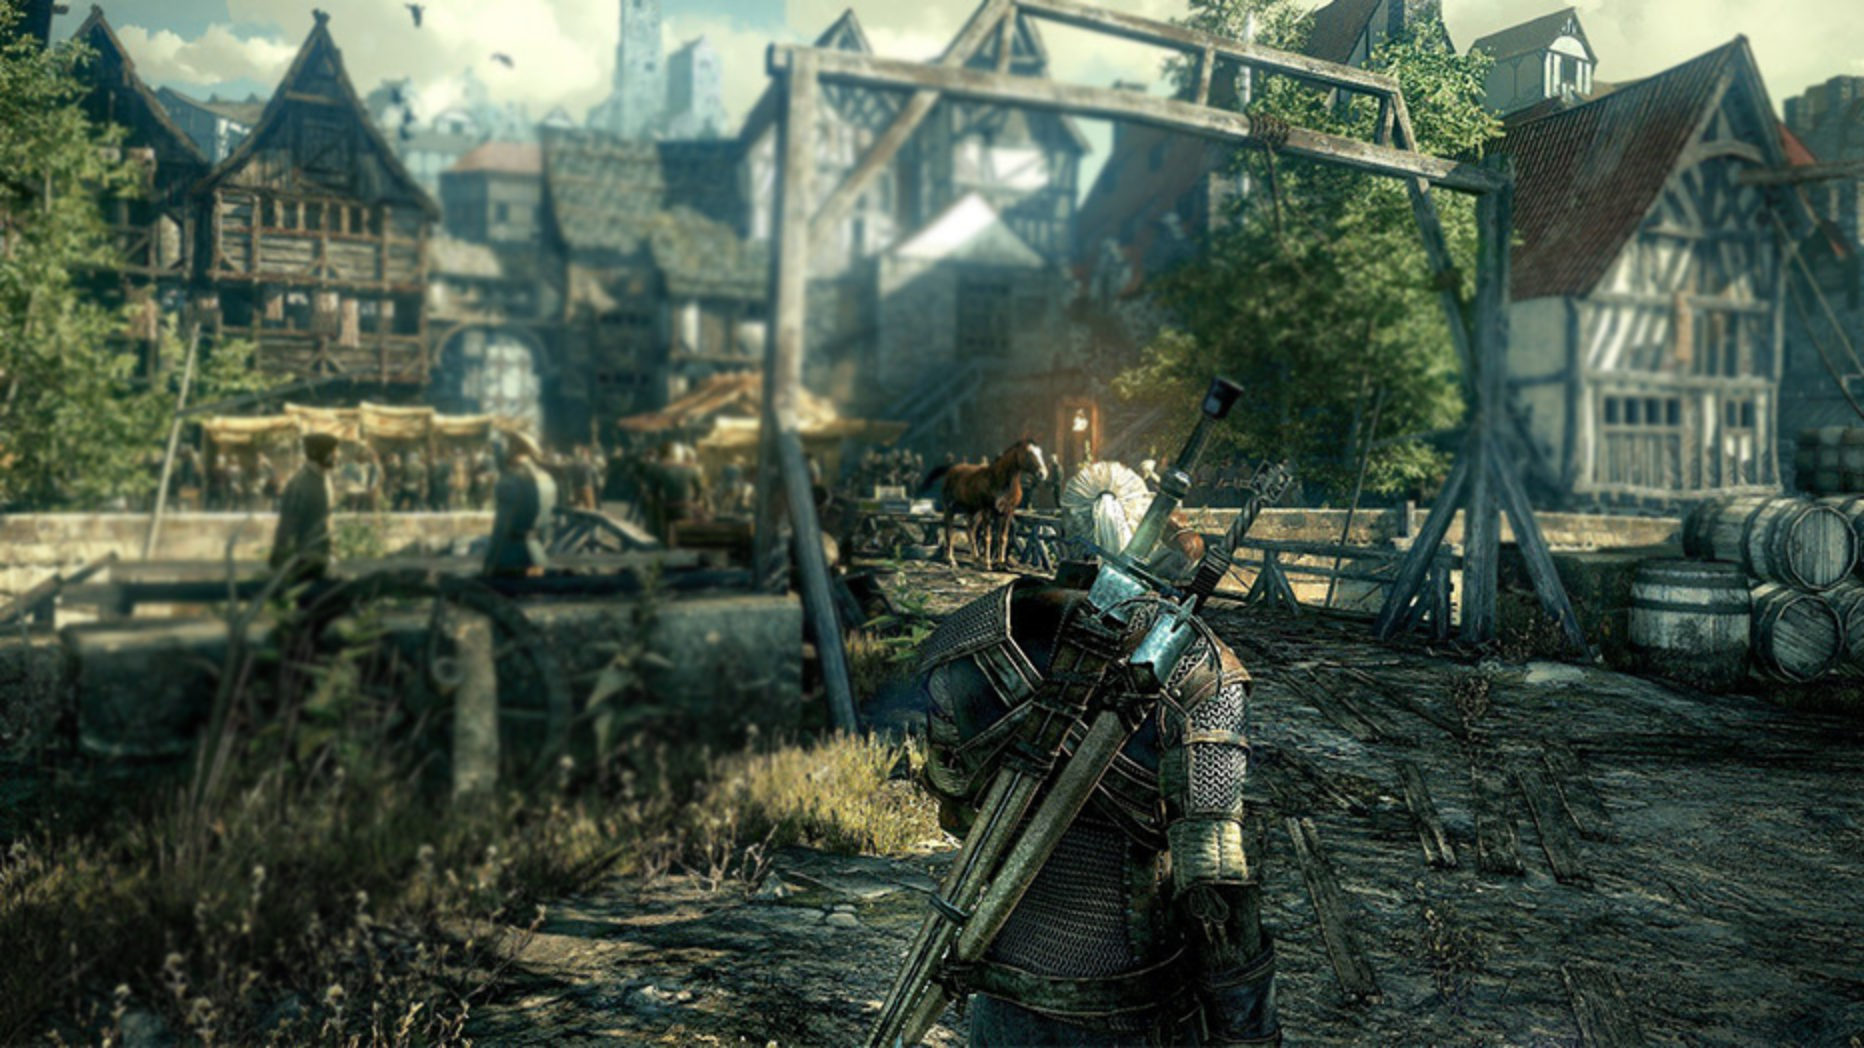 The Witcher 3 Gameplay and Early Impressions